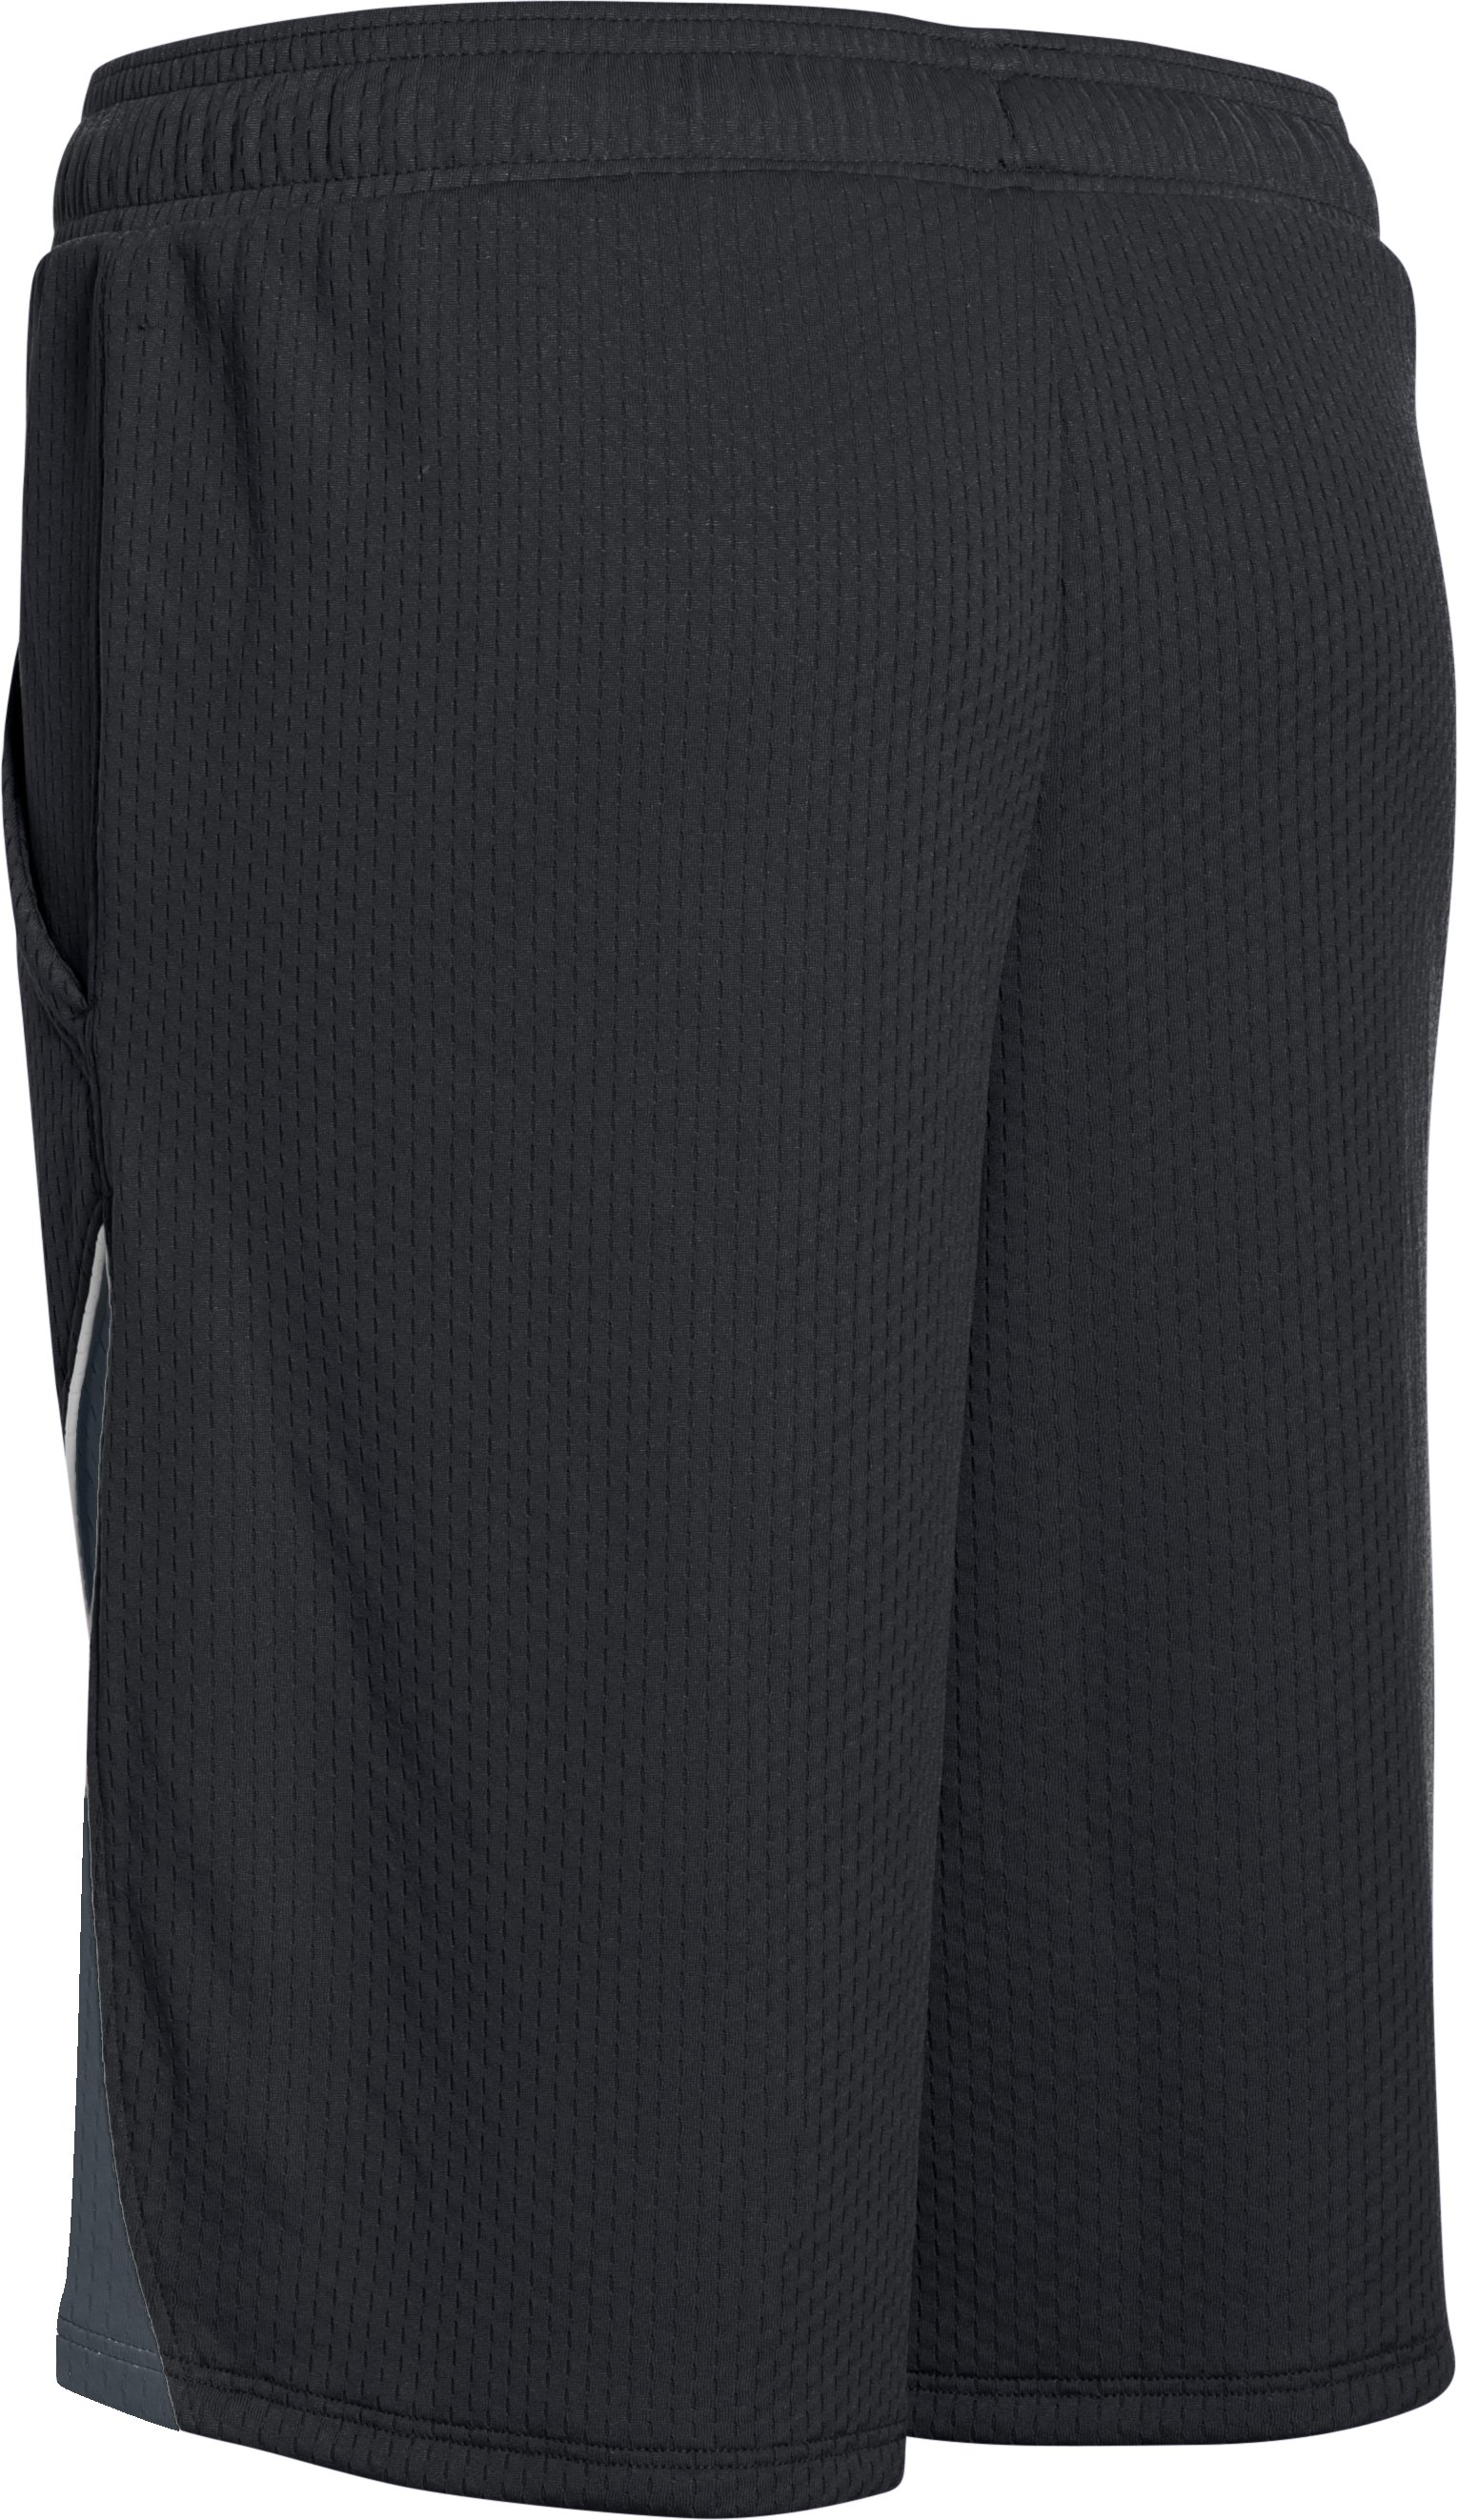 Girls' UA Pop A Shot Basketball Short, Black